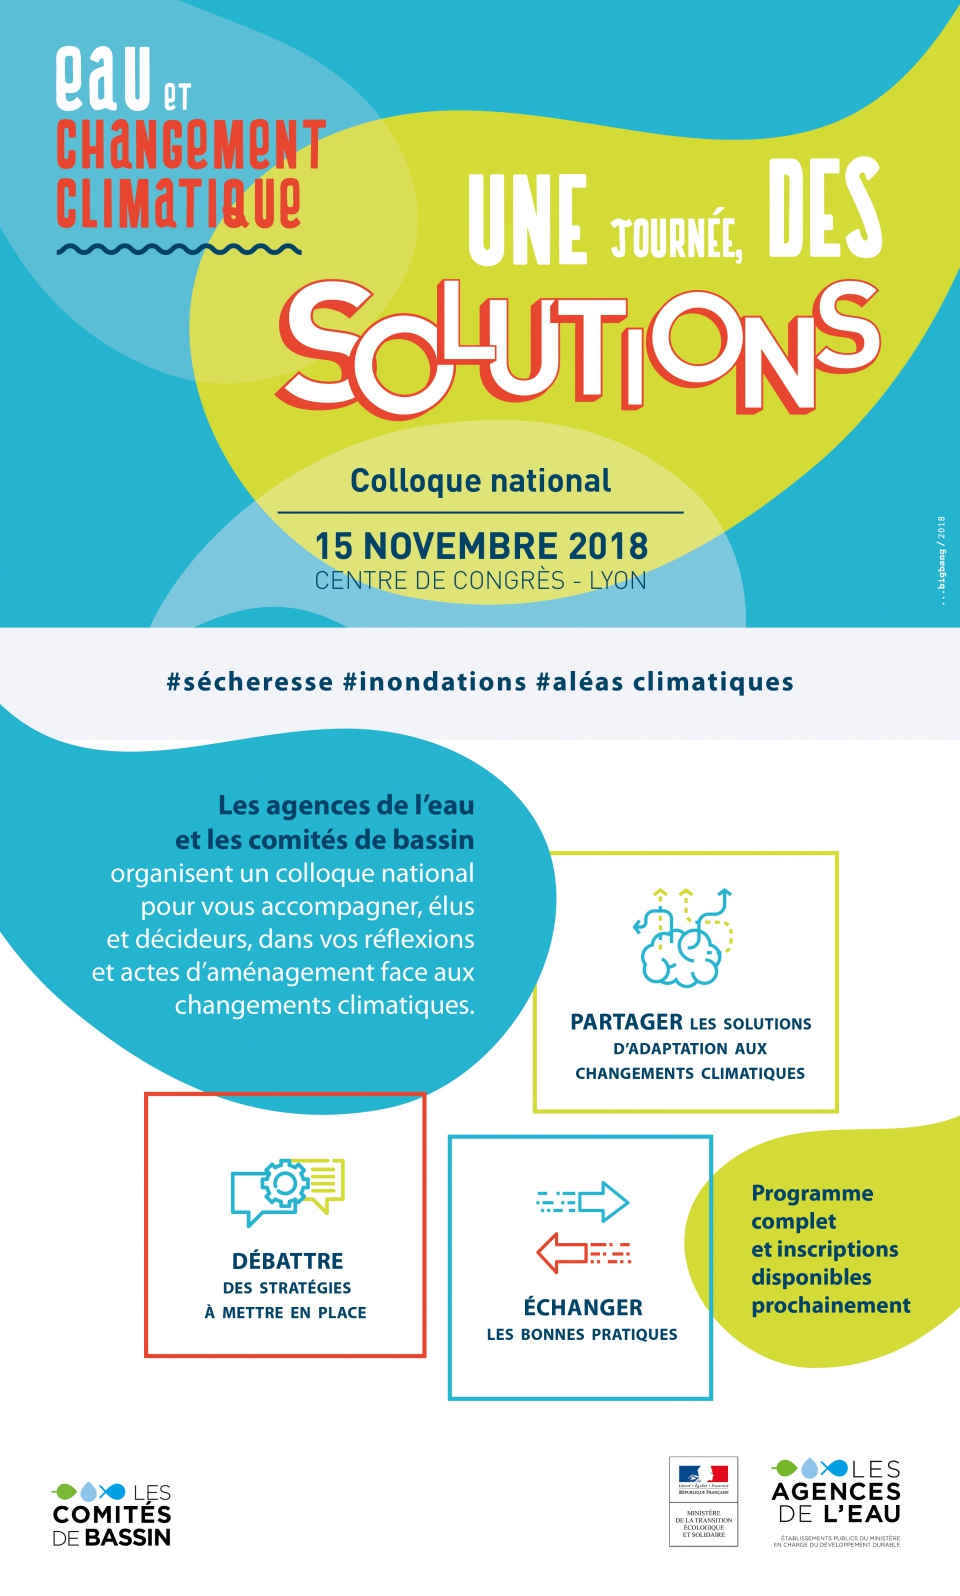 ae_save_the_date_colloque_changement_climatique_v6_1.jpg